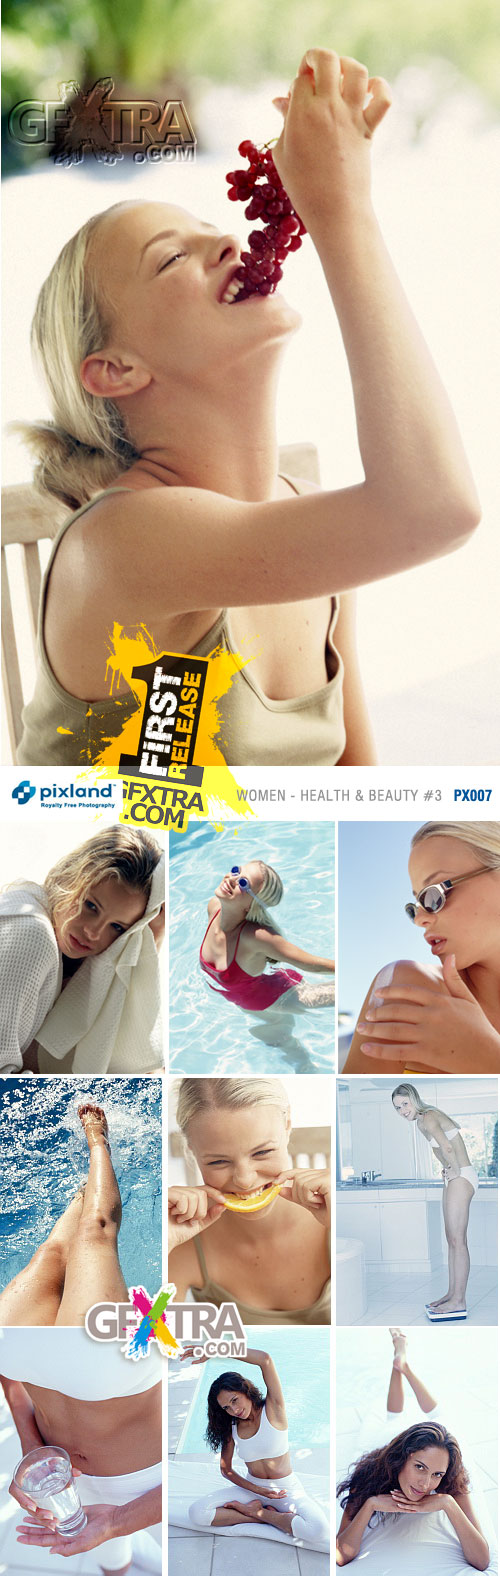 Pixland PX007 Women - Health & Beauty #3